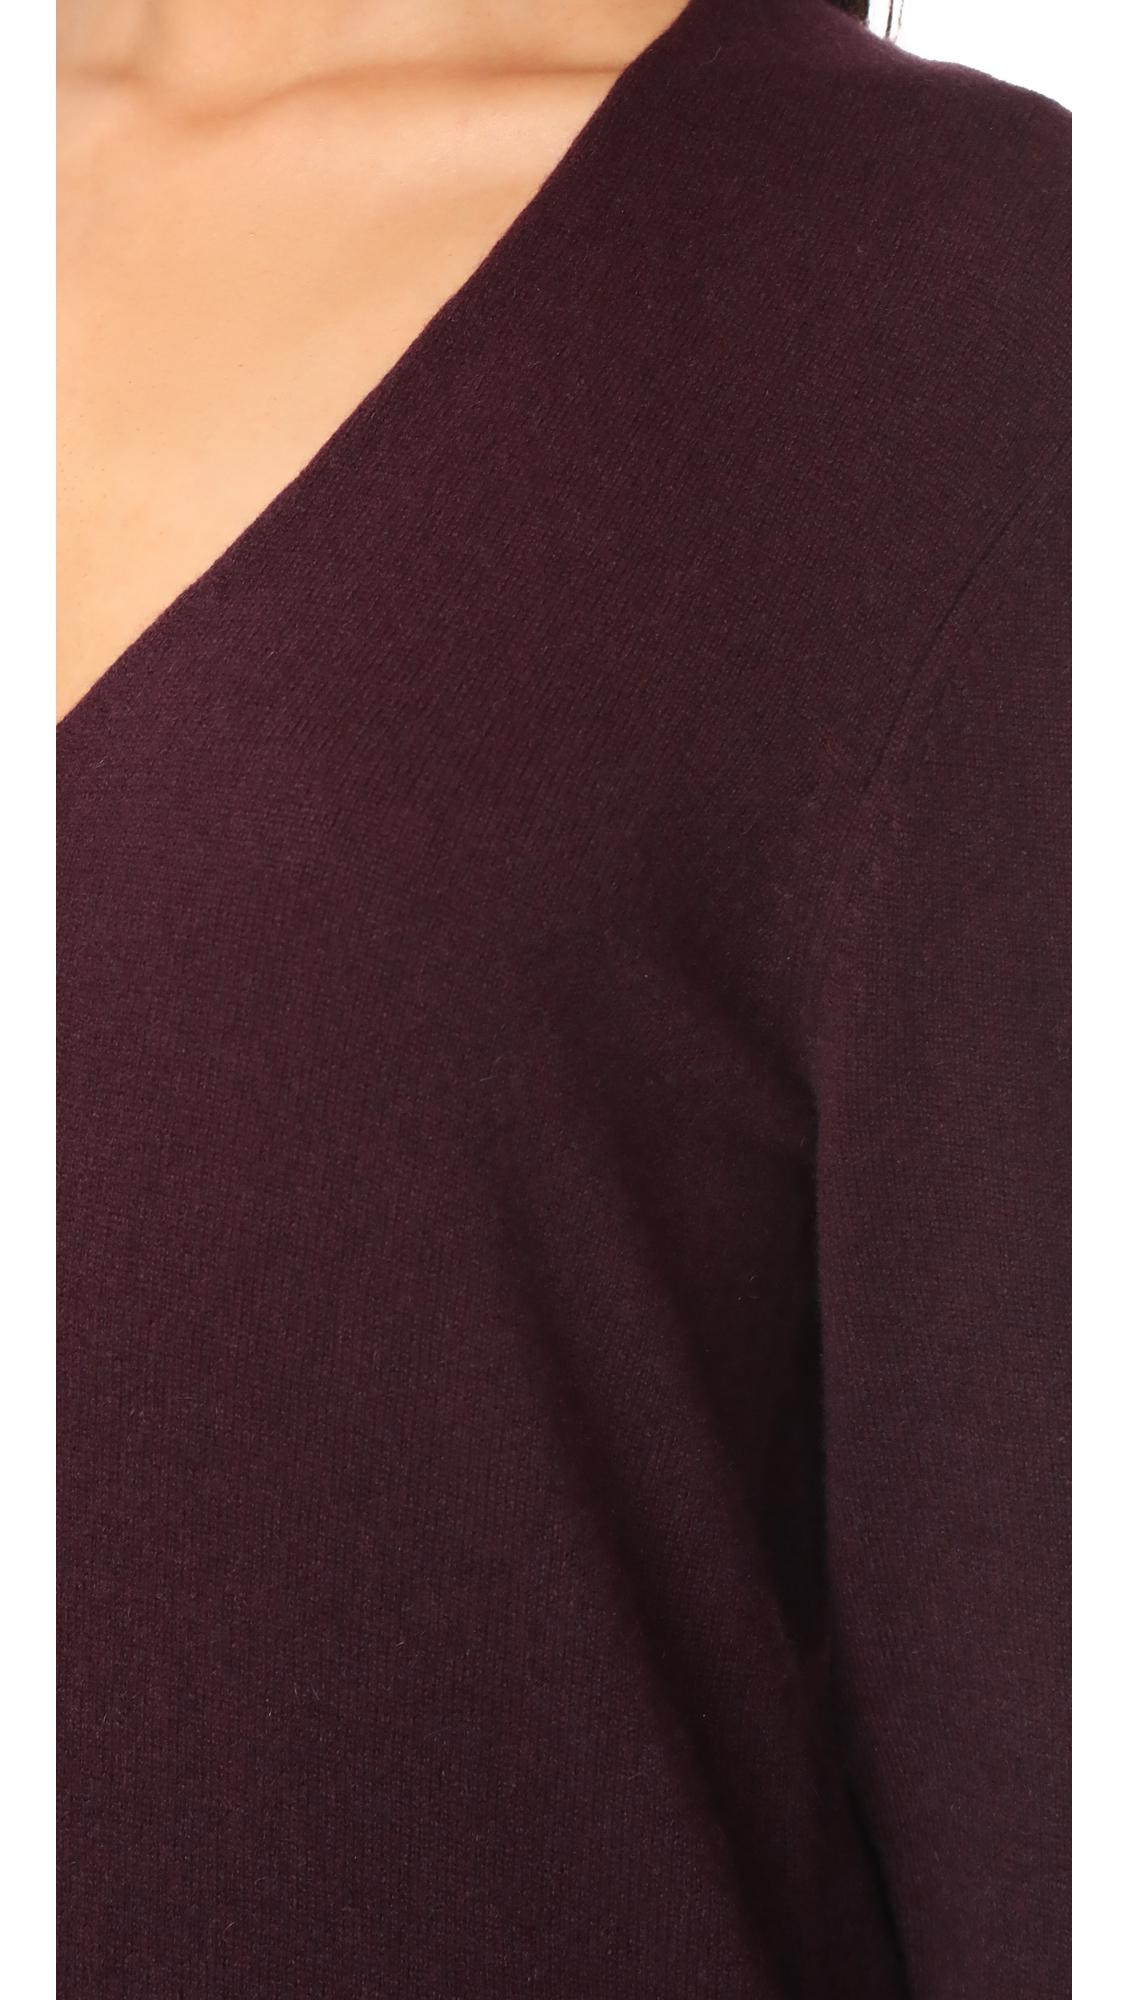 4958a182c9 Equipment Rosemary Cashmere Sweater Dress in Purple - Lyst